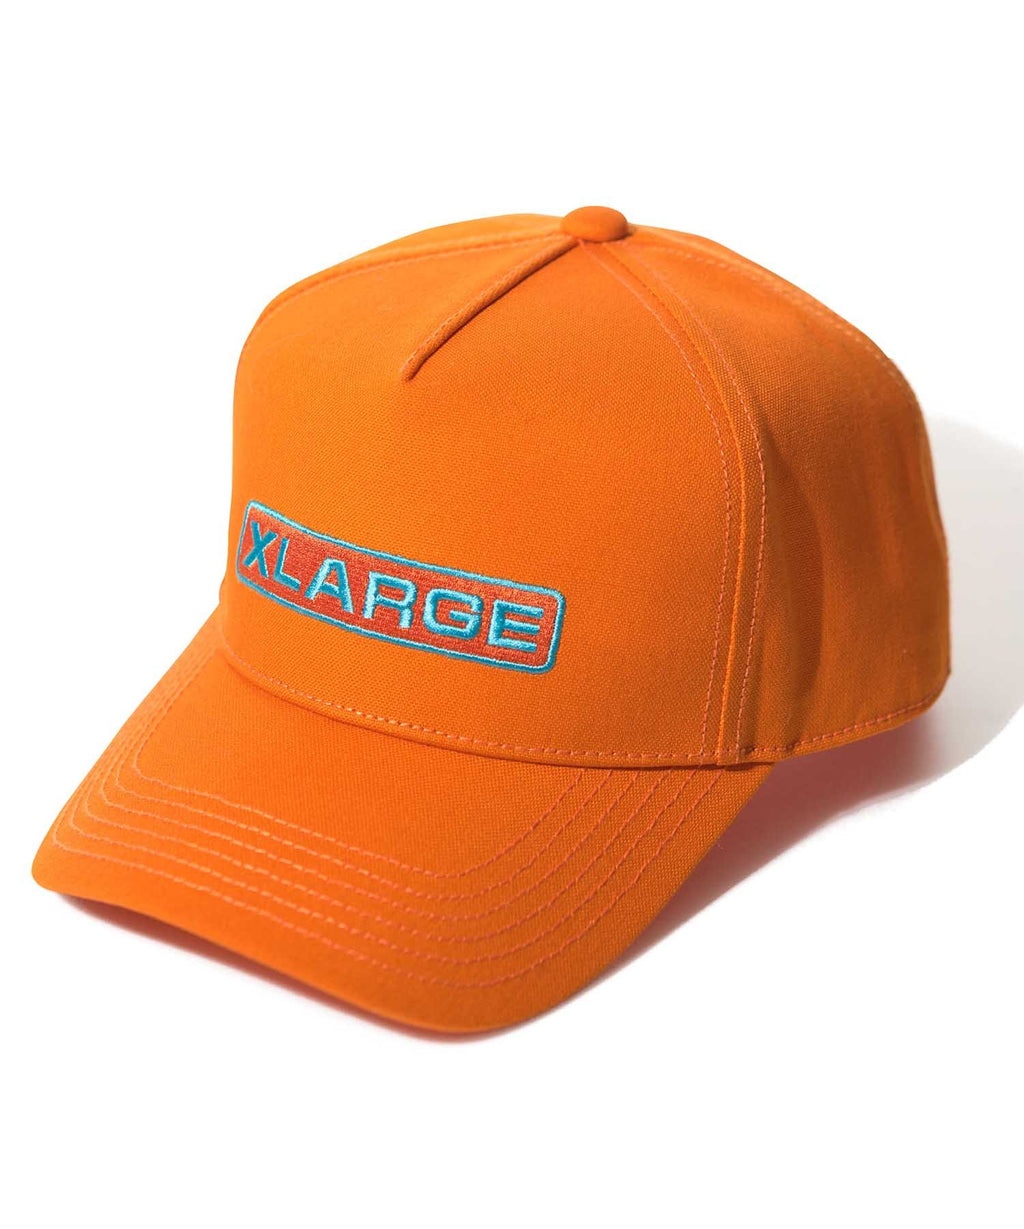 ROUNDED LOGO TRUCKER CAP - ORANGE